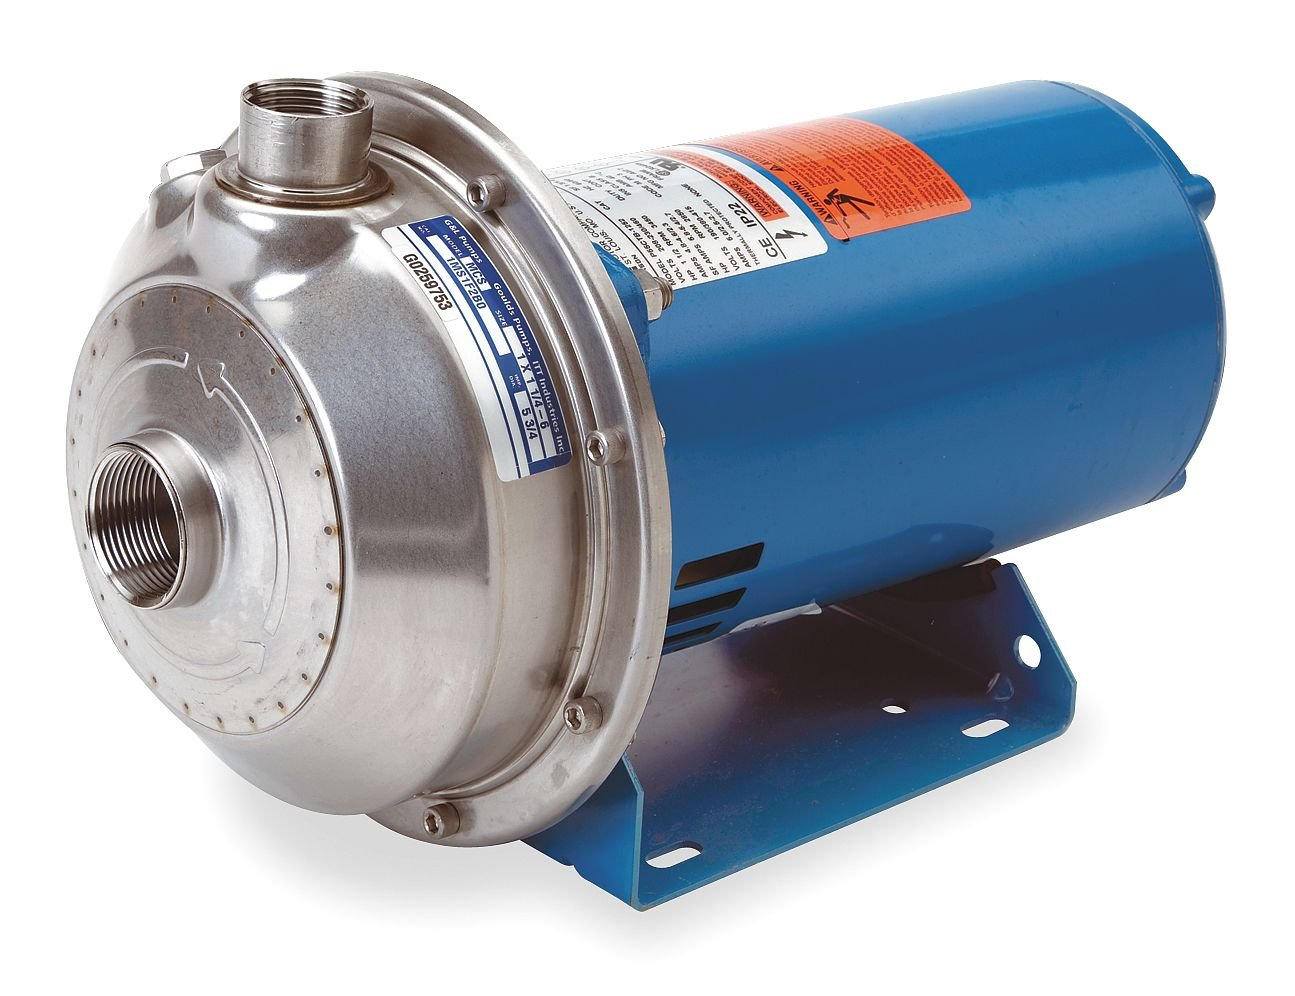 ANSI 316L Stainless Steel Housing Material GOULDS WATER TECHNOLOGY 2MS1E5E4 208-230//460 Voltage 3 Phase 1 HP Centrifugal Pump